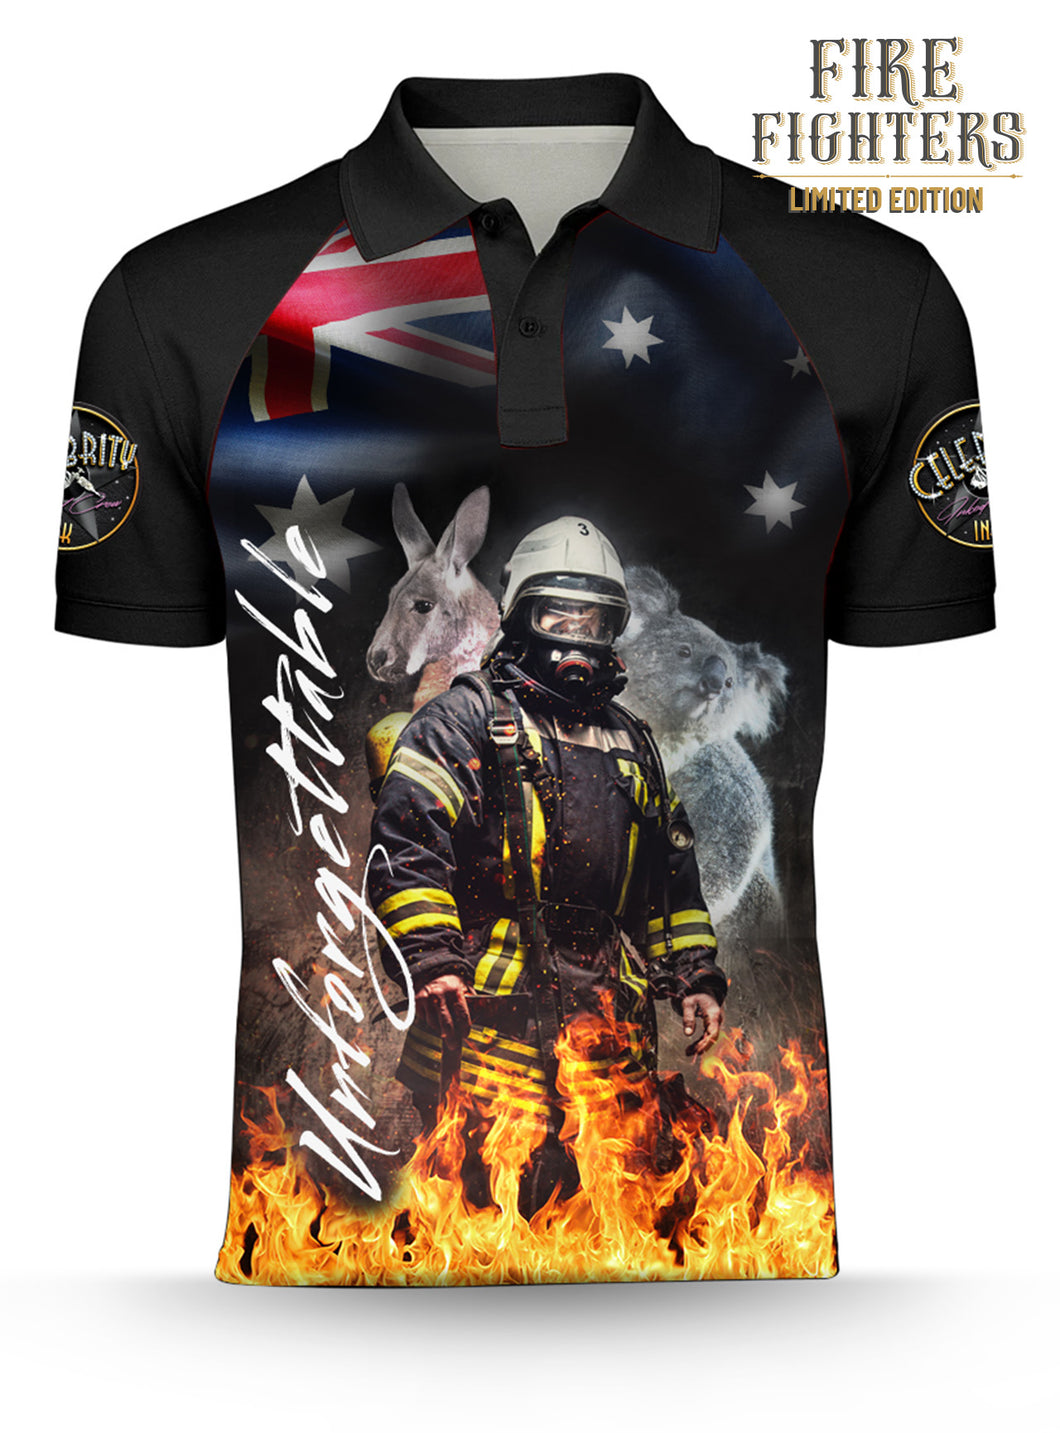 Fire Fighters Limited Edition